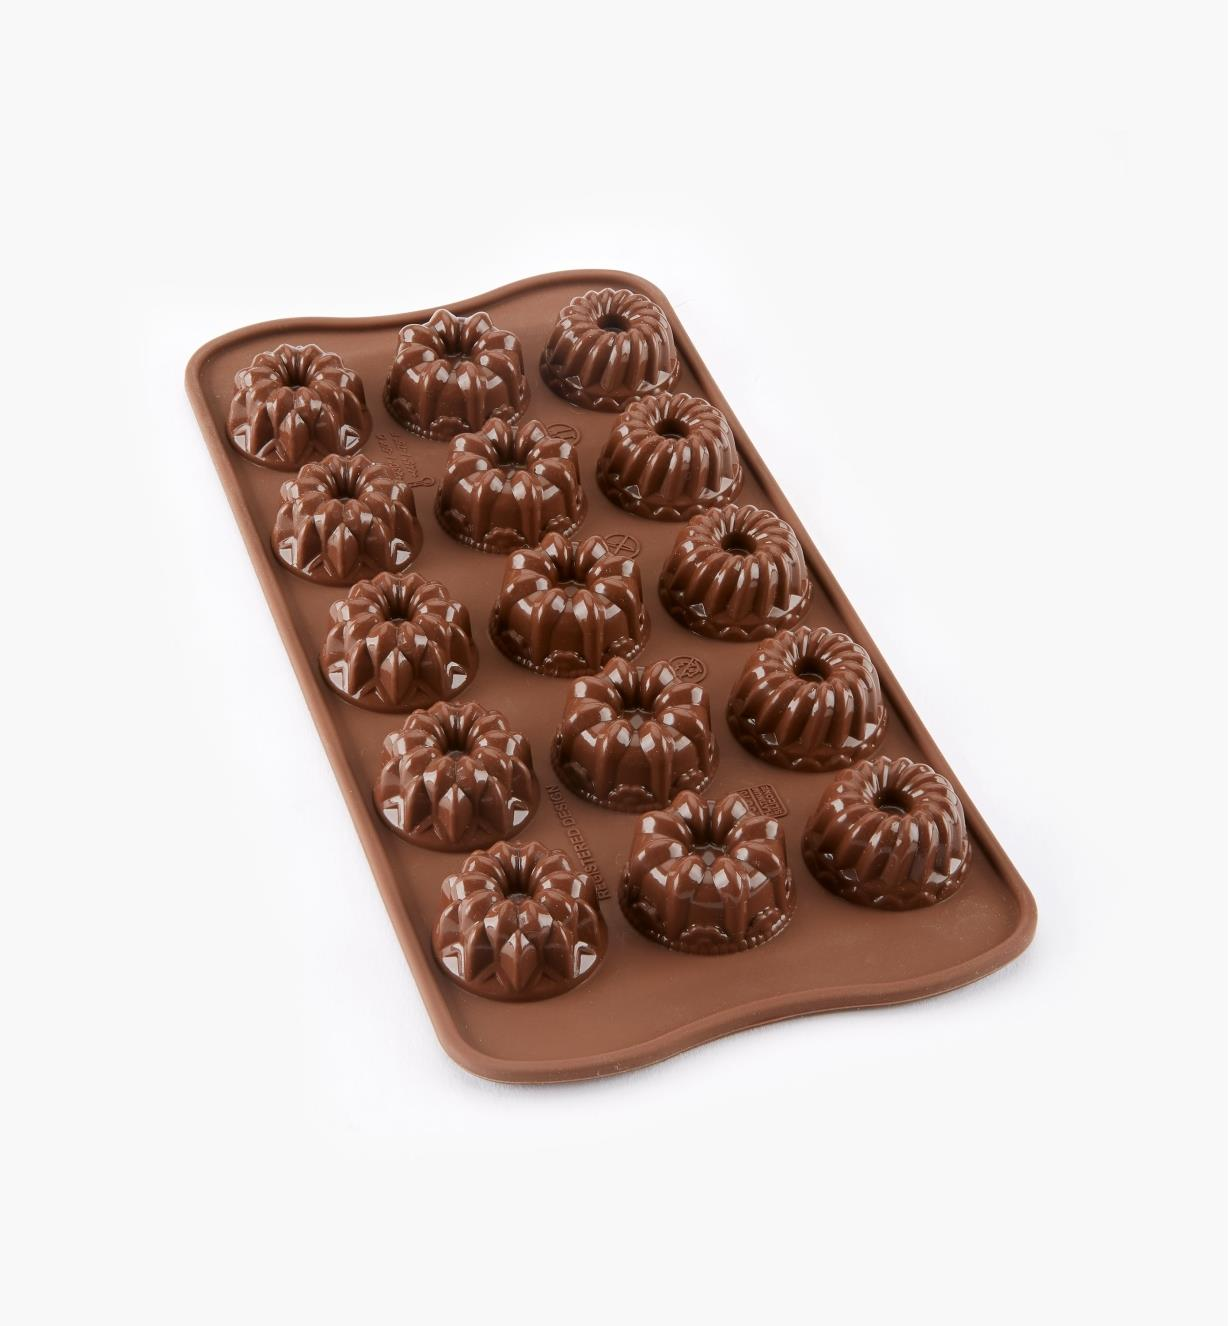 45K2216 - Mini Cake Chocolate Mold